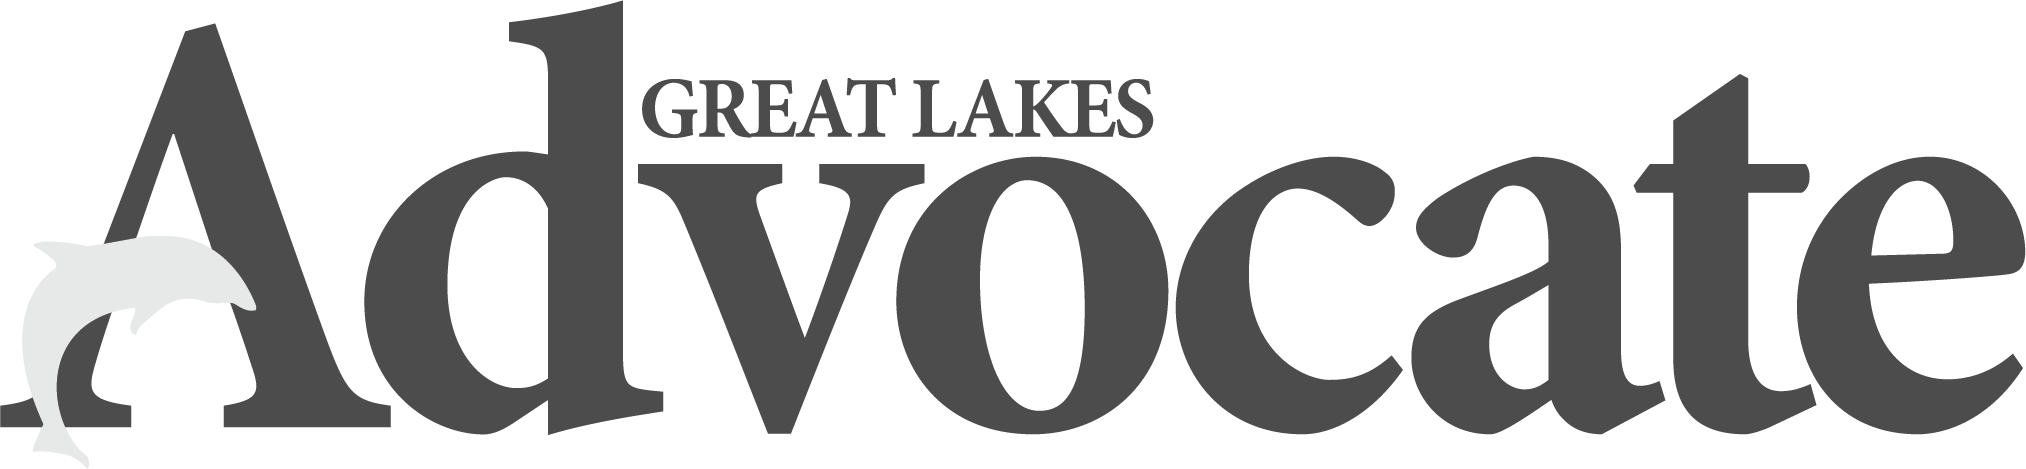 Great Lakes Advocate